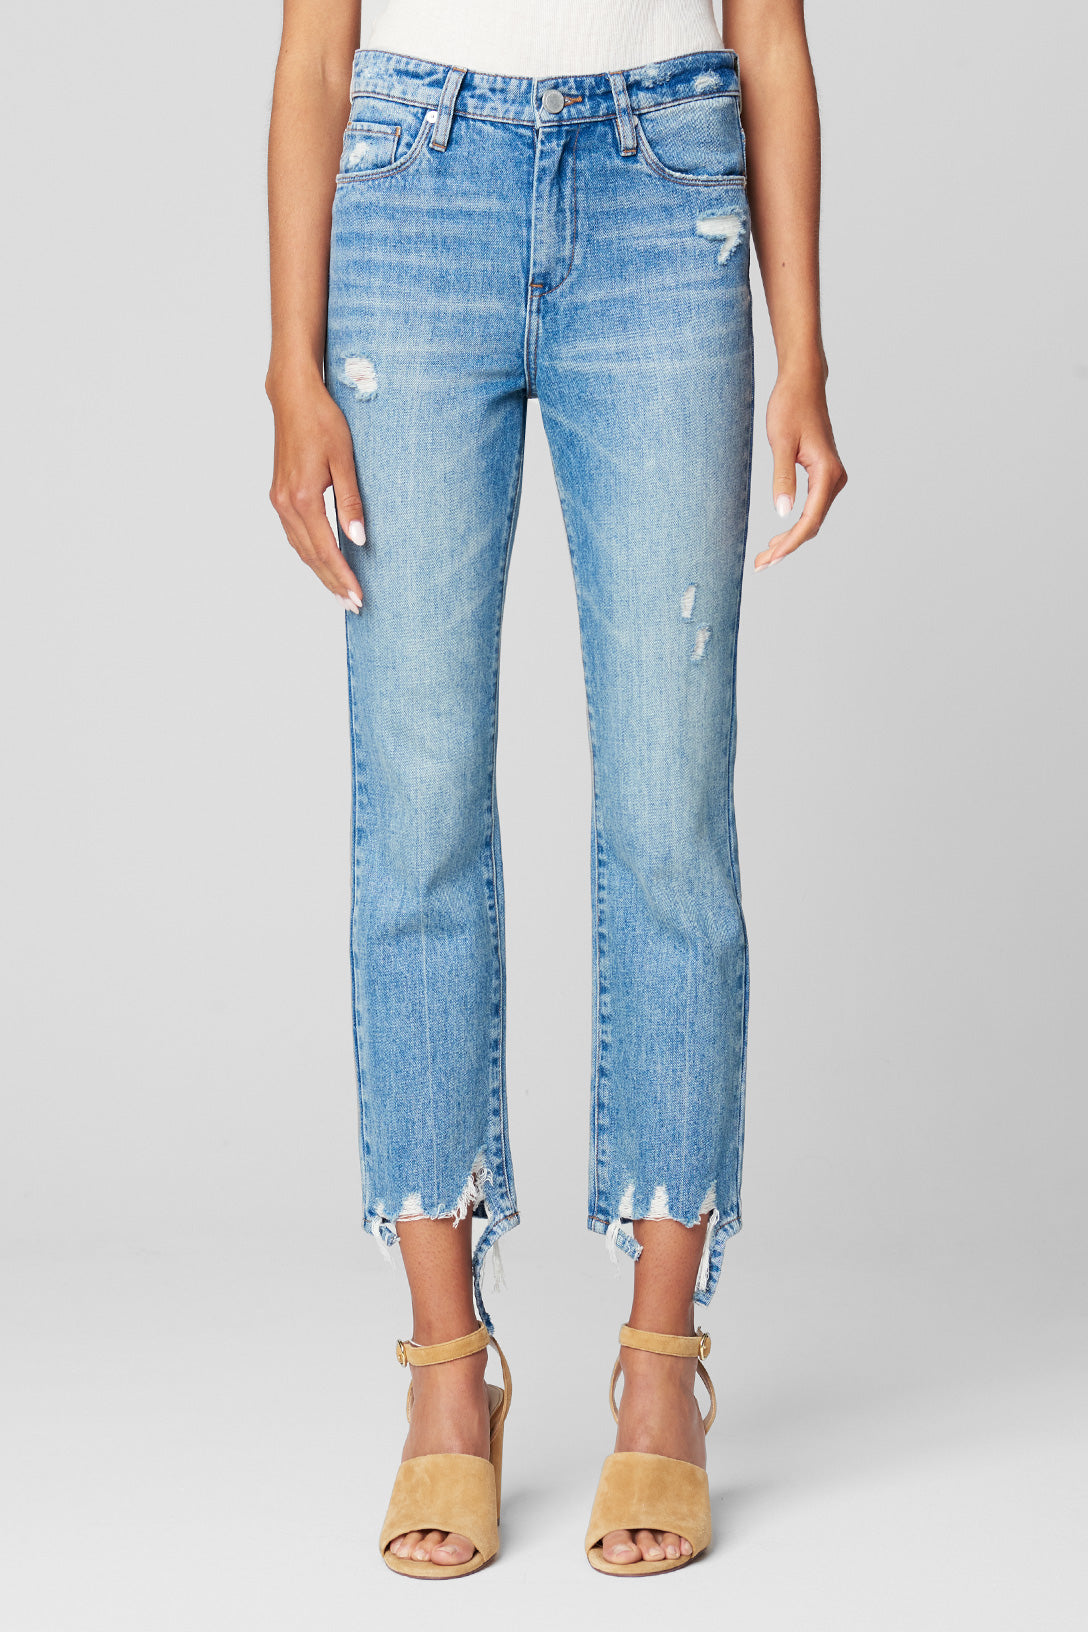 The Madison Crop in Double Agent   Blank NYC